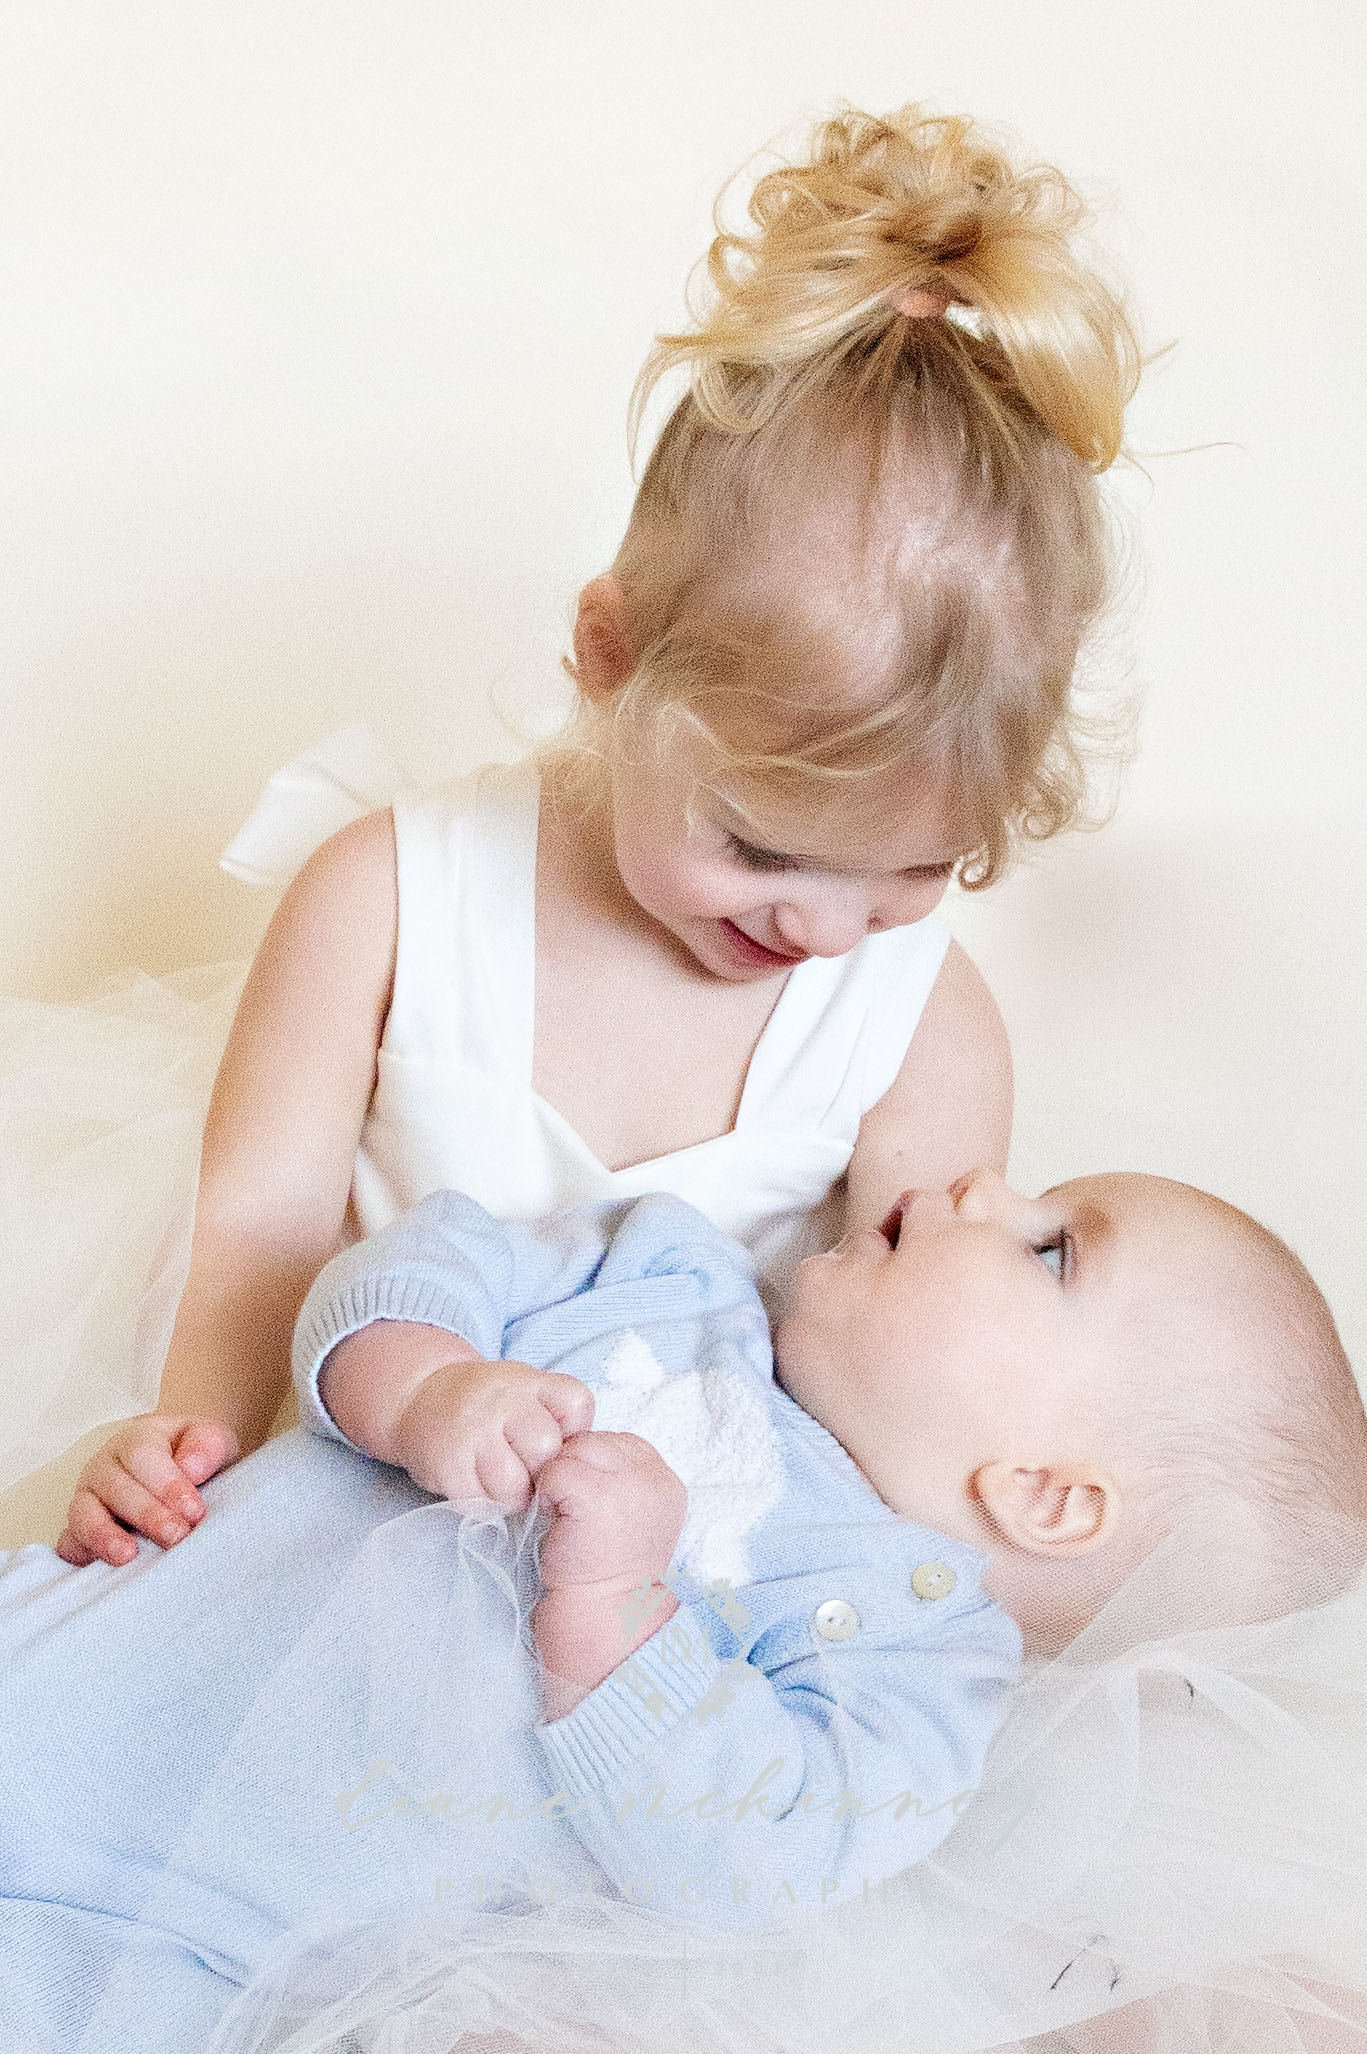 Sibling and baby photos